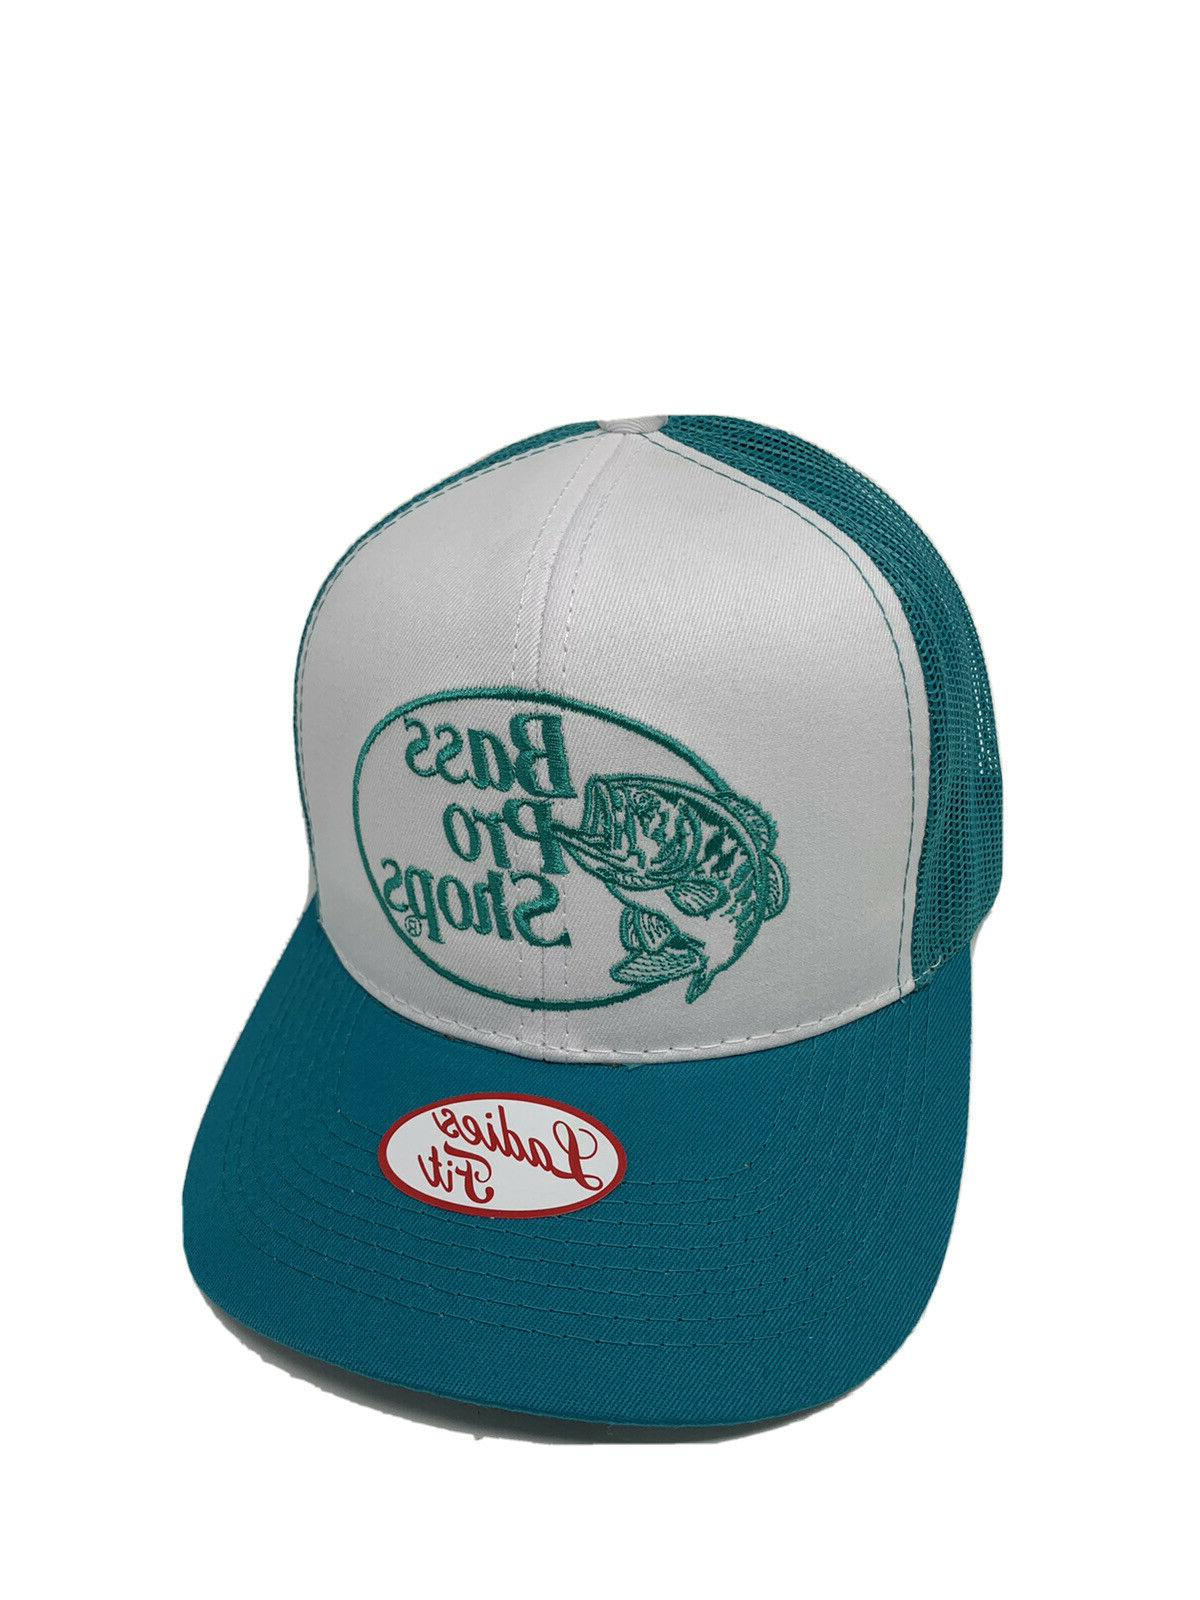 Bass Pro Hat Embroidered Logo Hunting